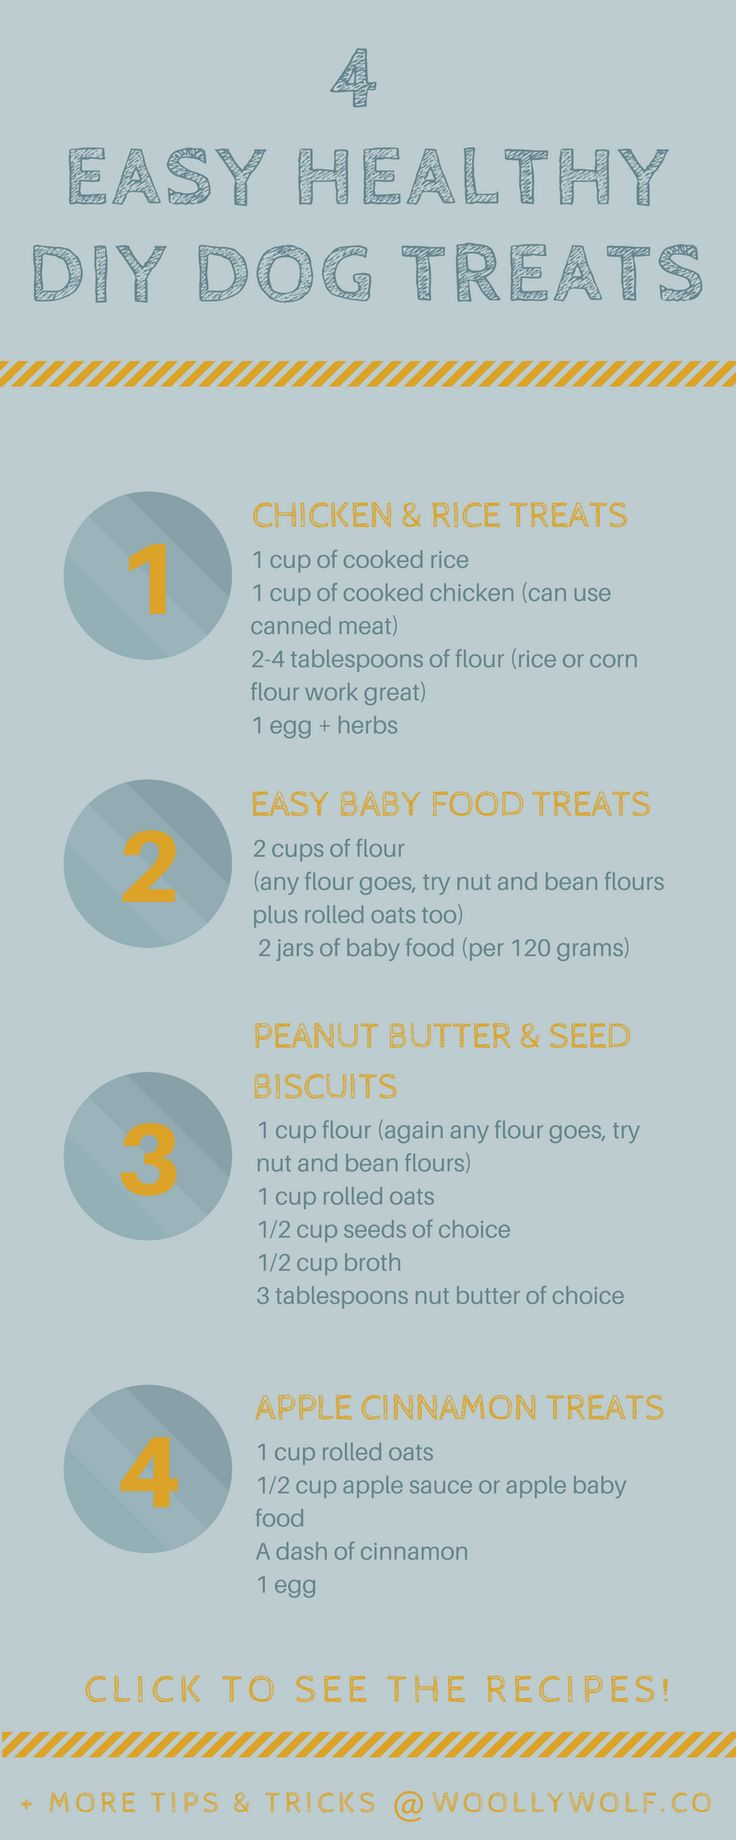 4 Easy Healthy DIY Dog Treat Recipes. Dog training ideas, have fun with your doggo tips.